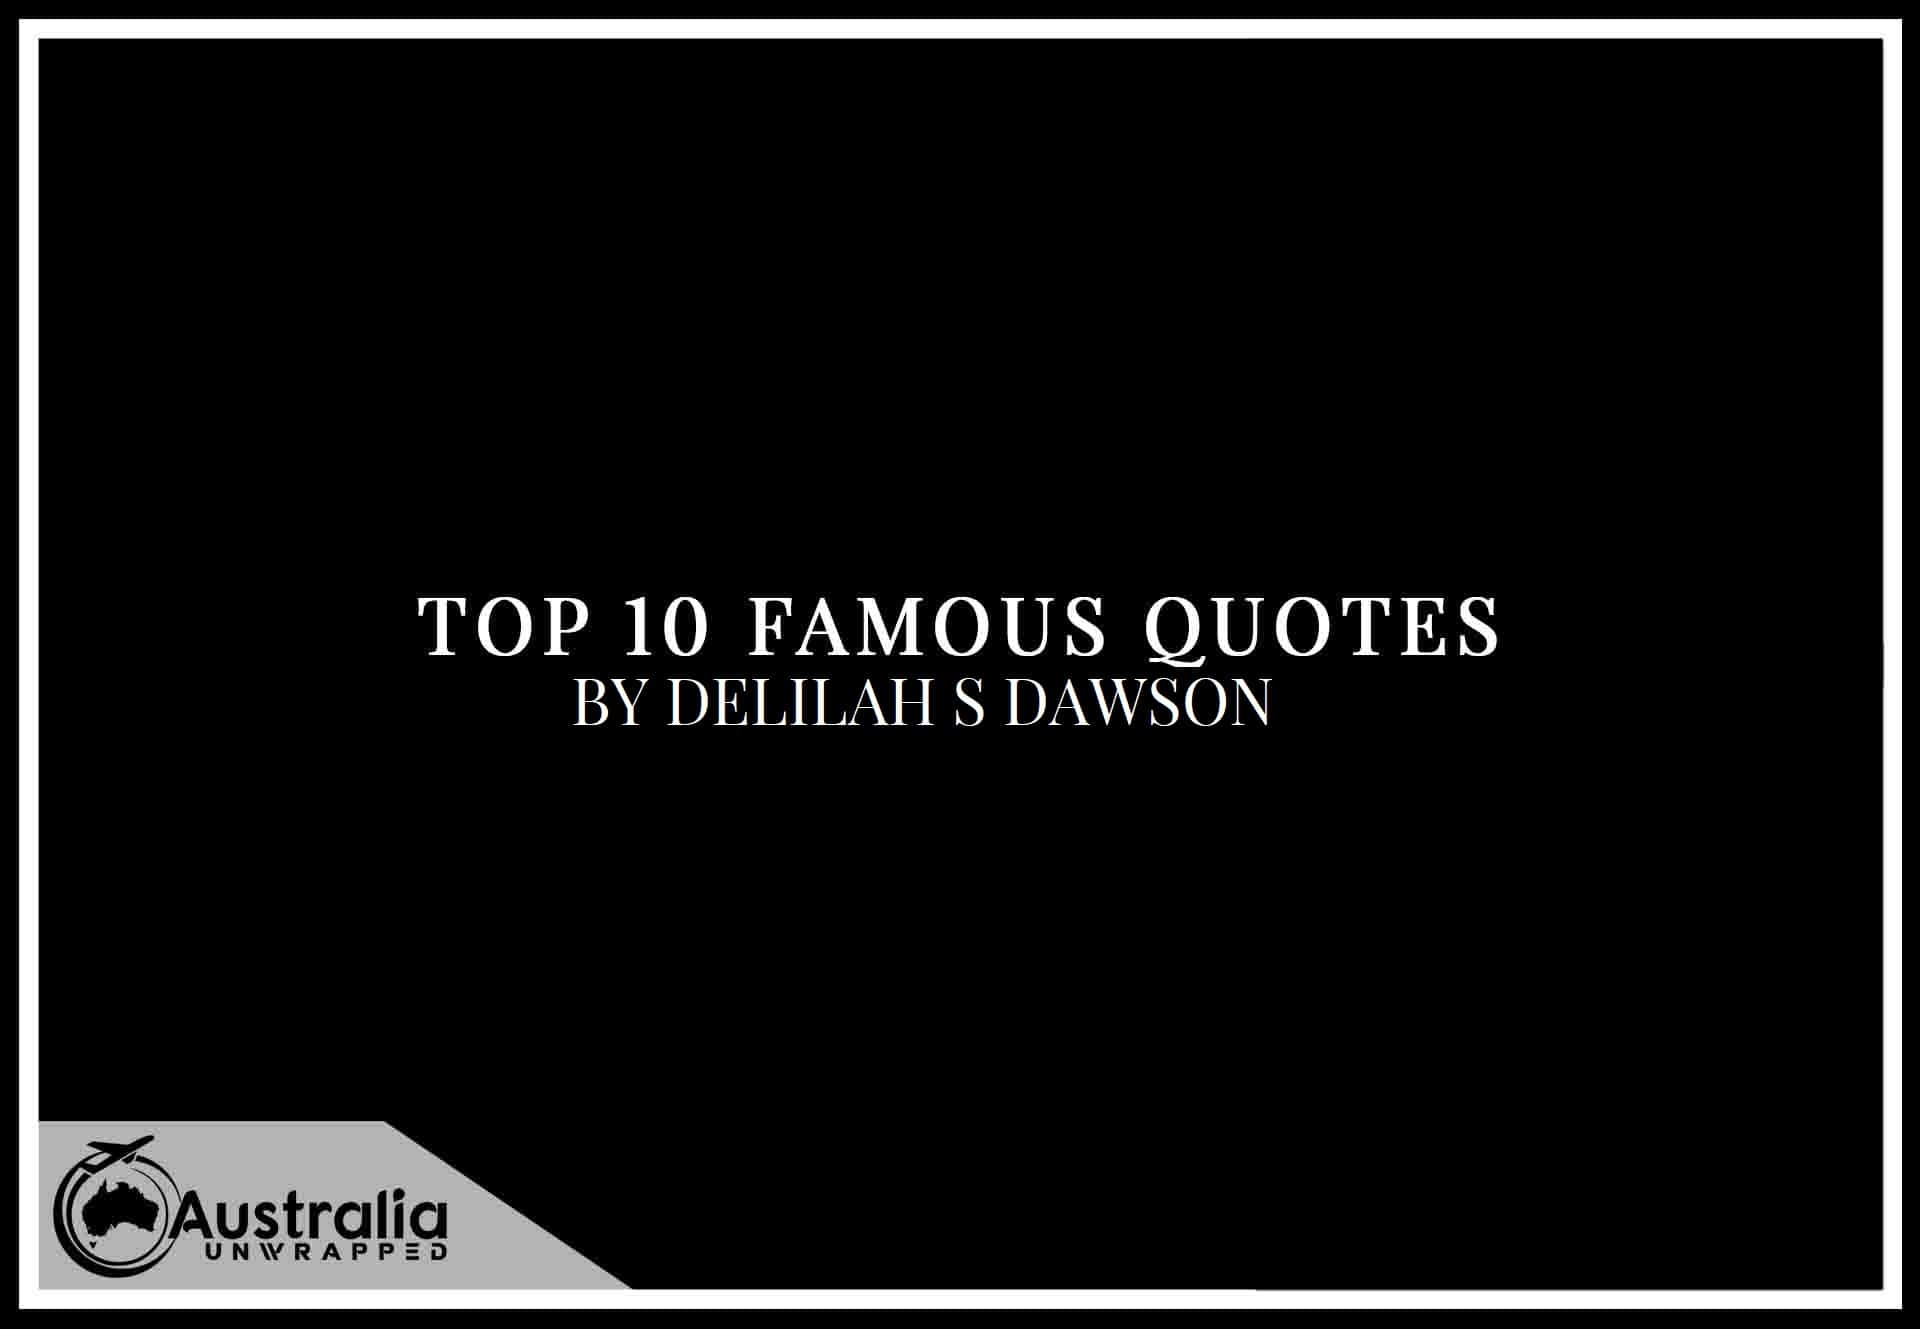 Top 10 Famous Quotes by Author Delilah S. Dawson